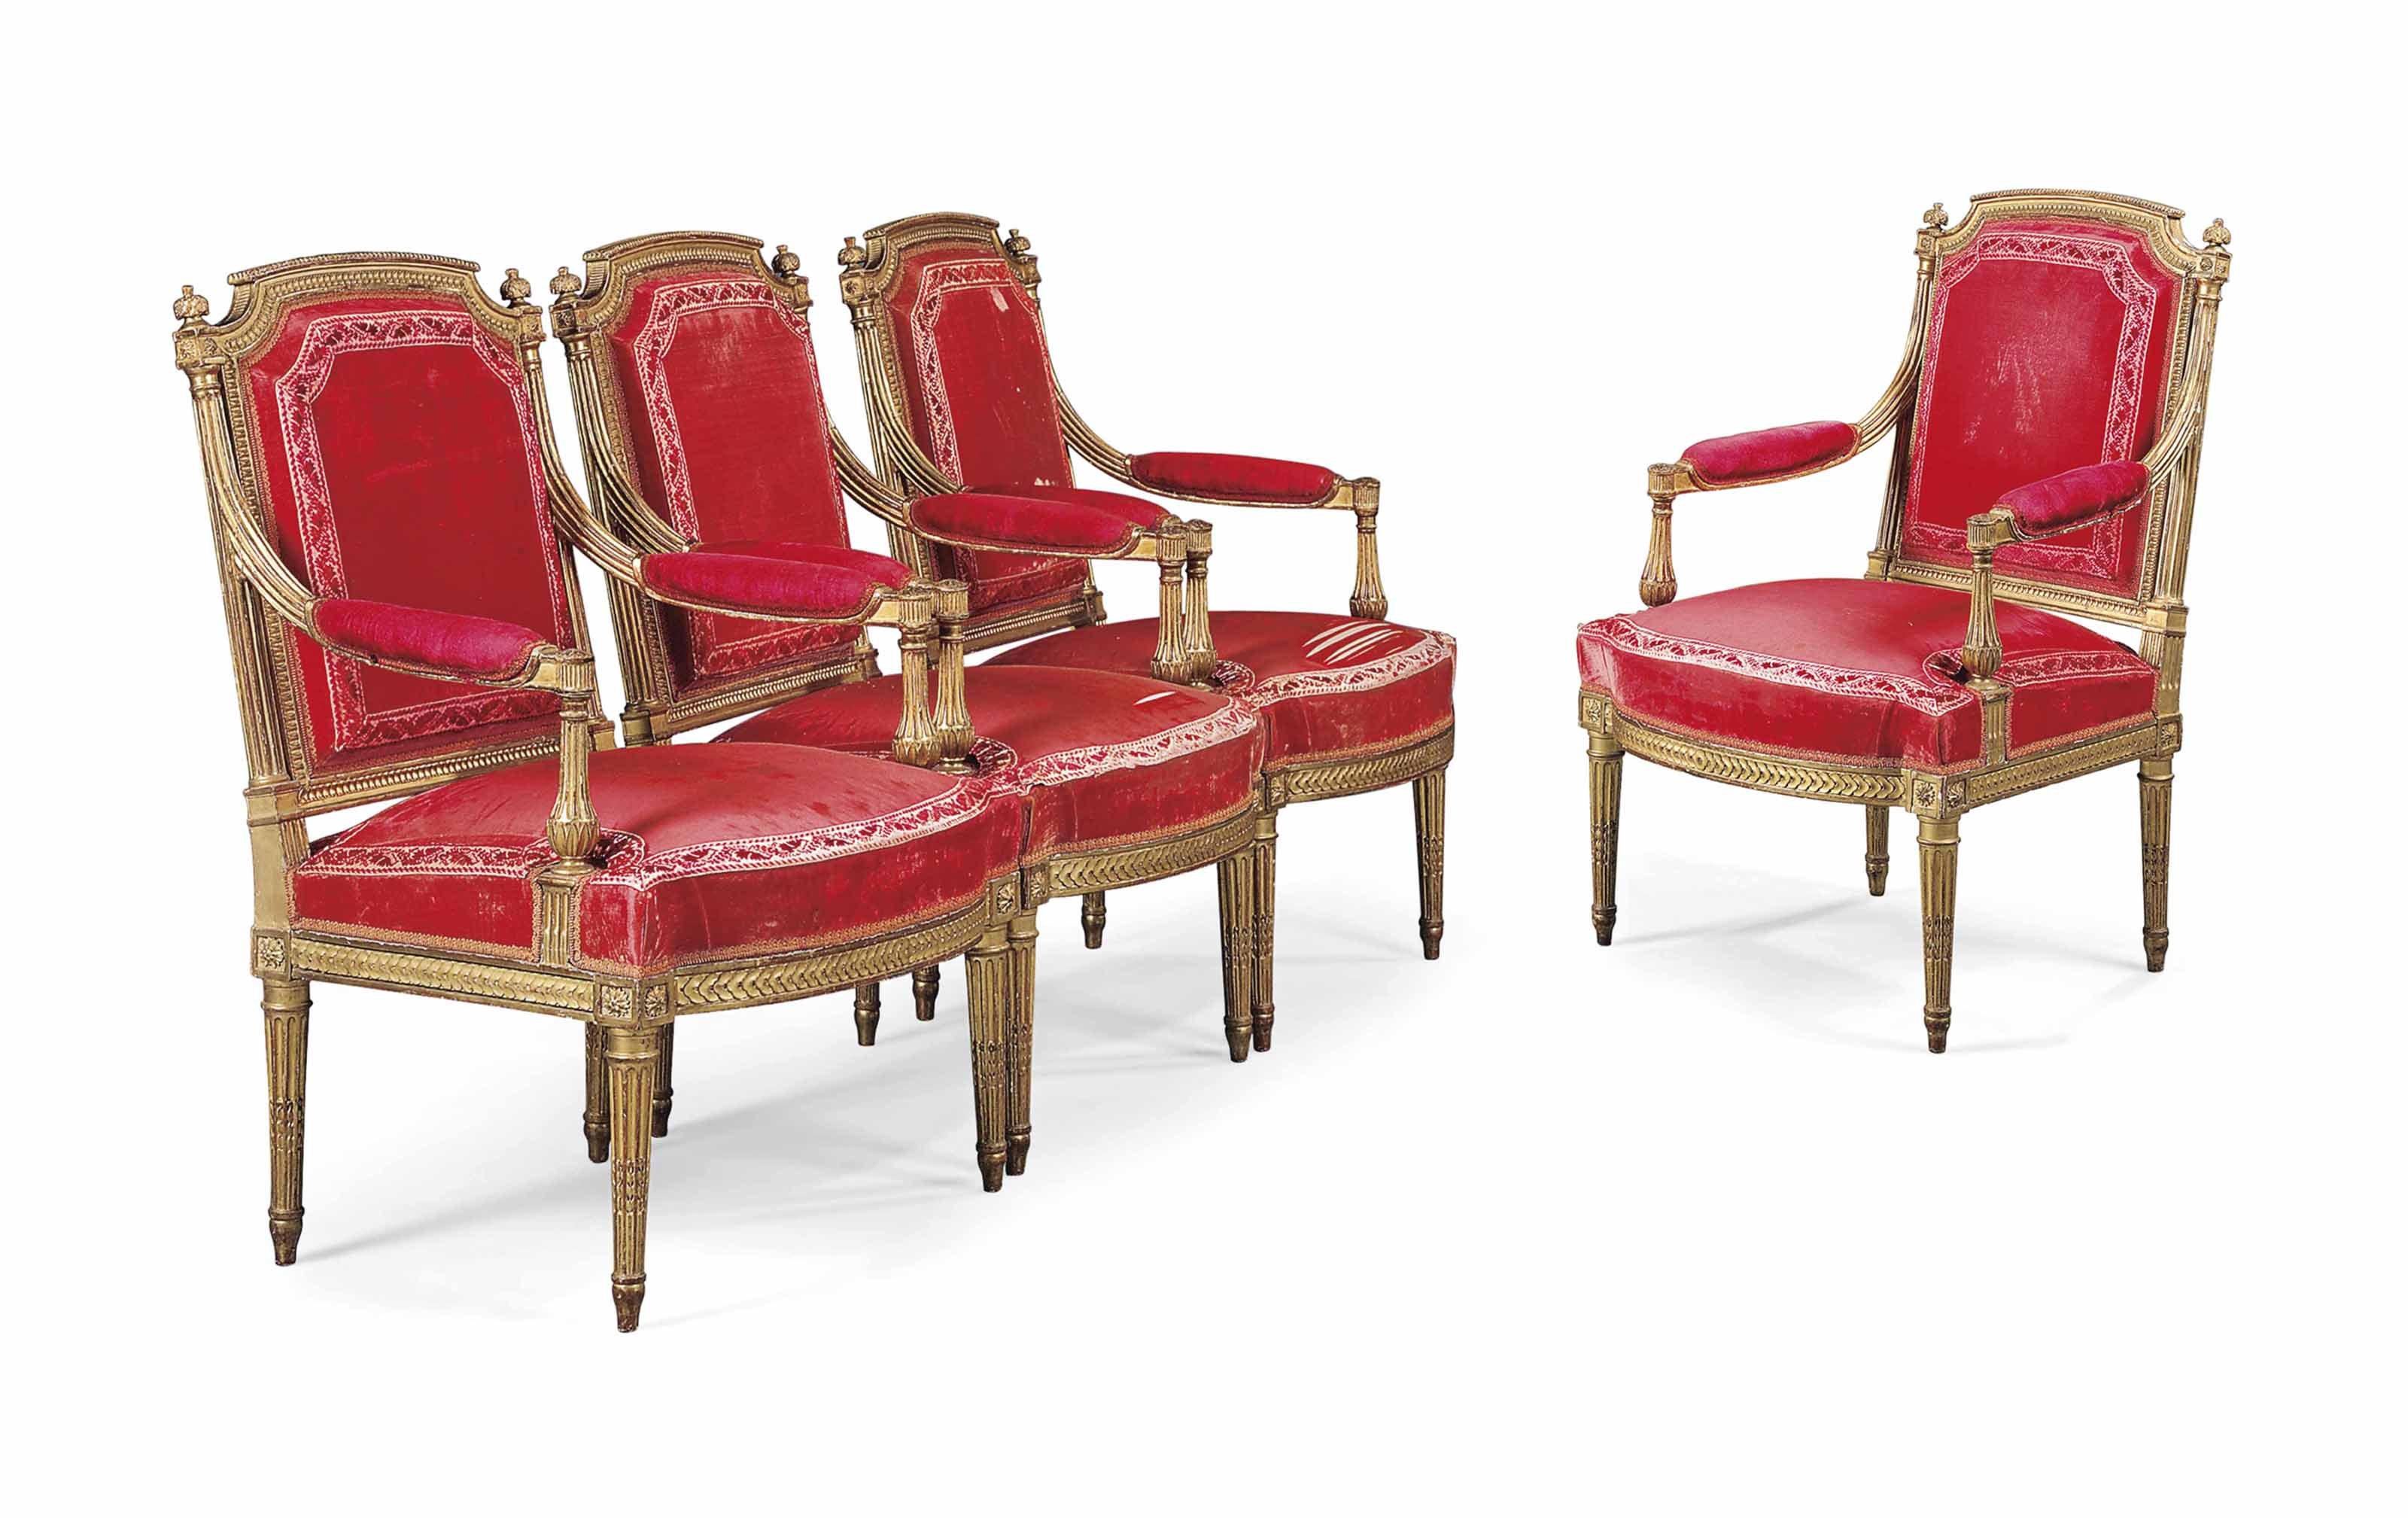 A SET OF FOUR LOUIS XVI GILTWOOD FAUTEUILS A LA REINE